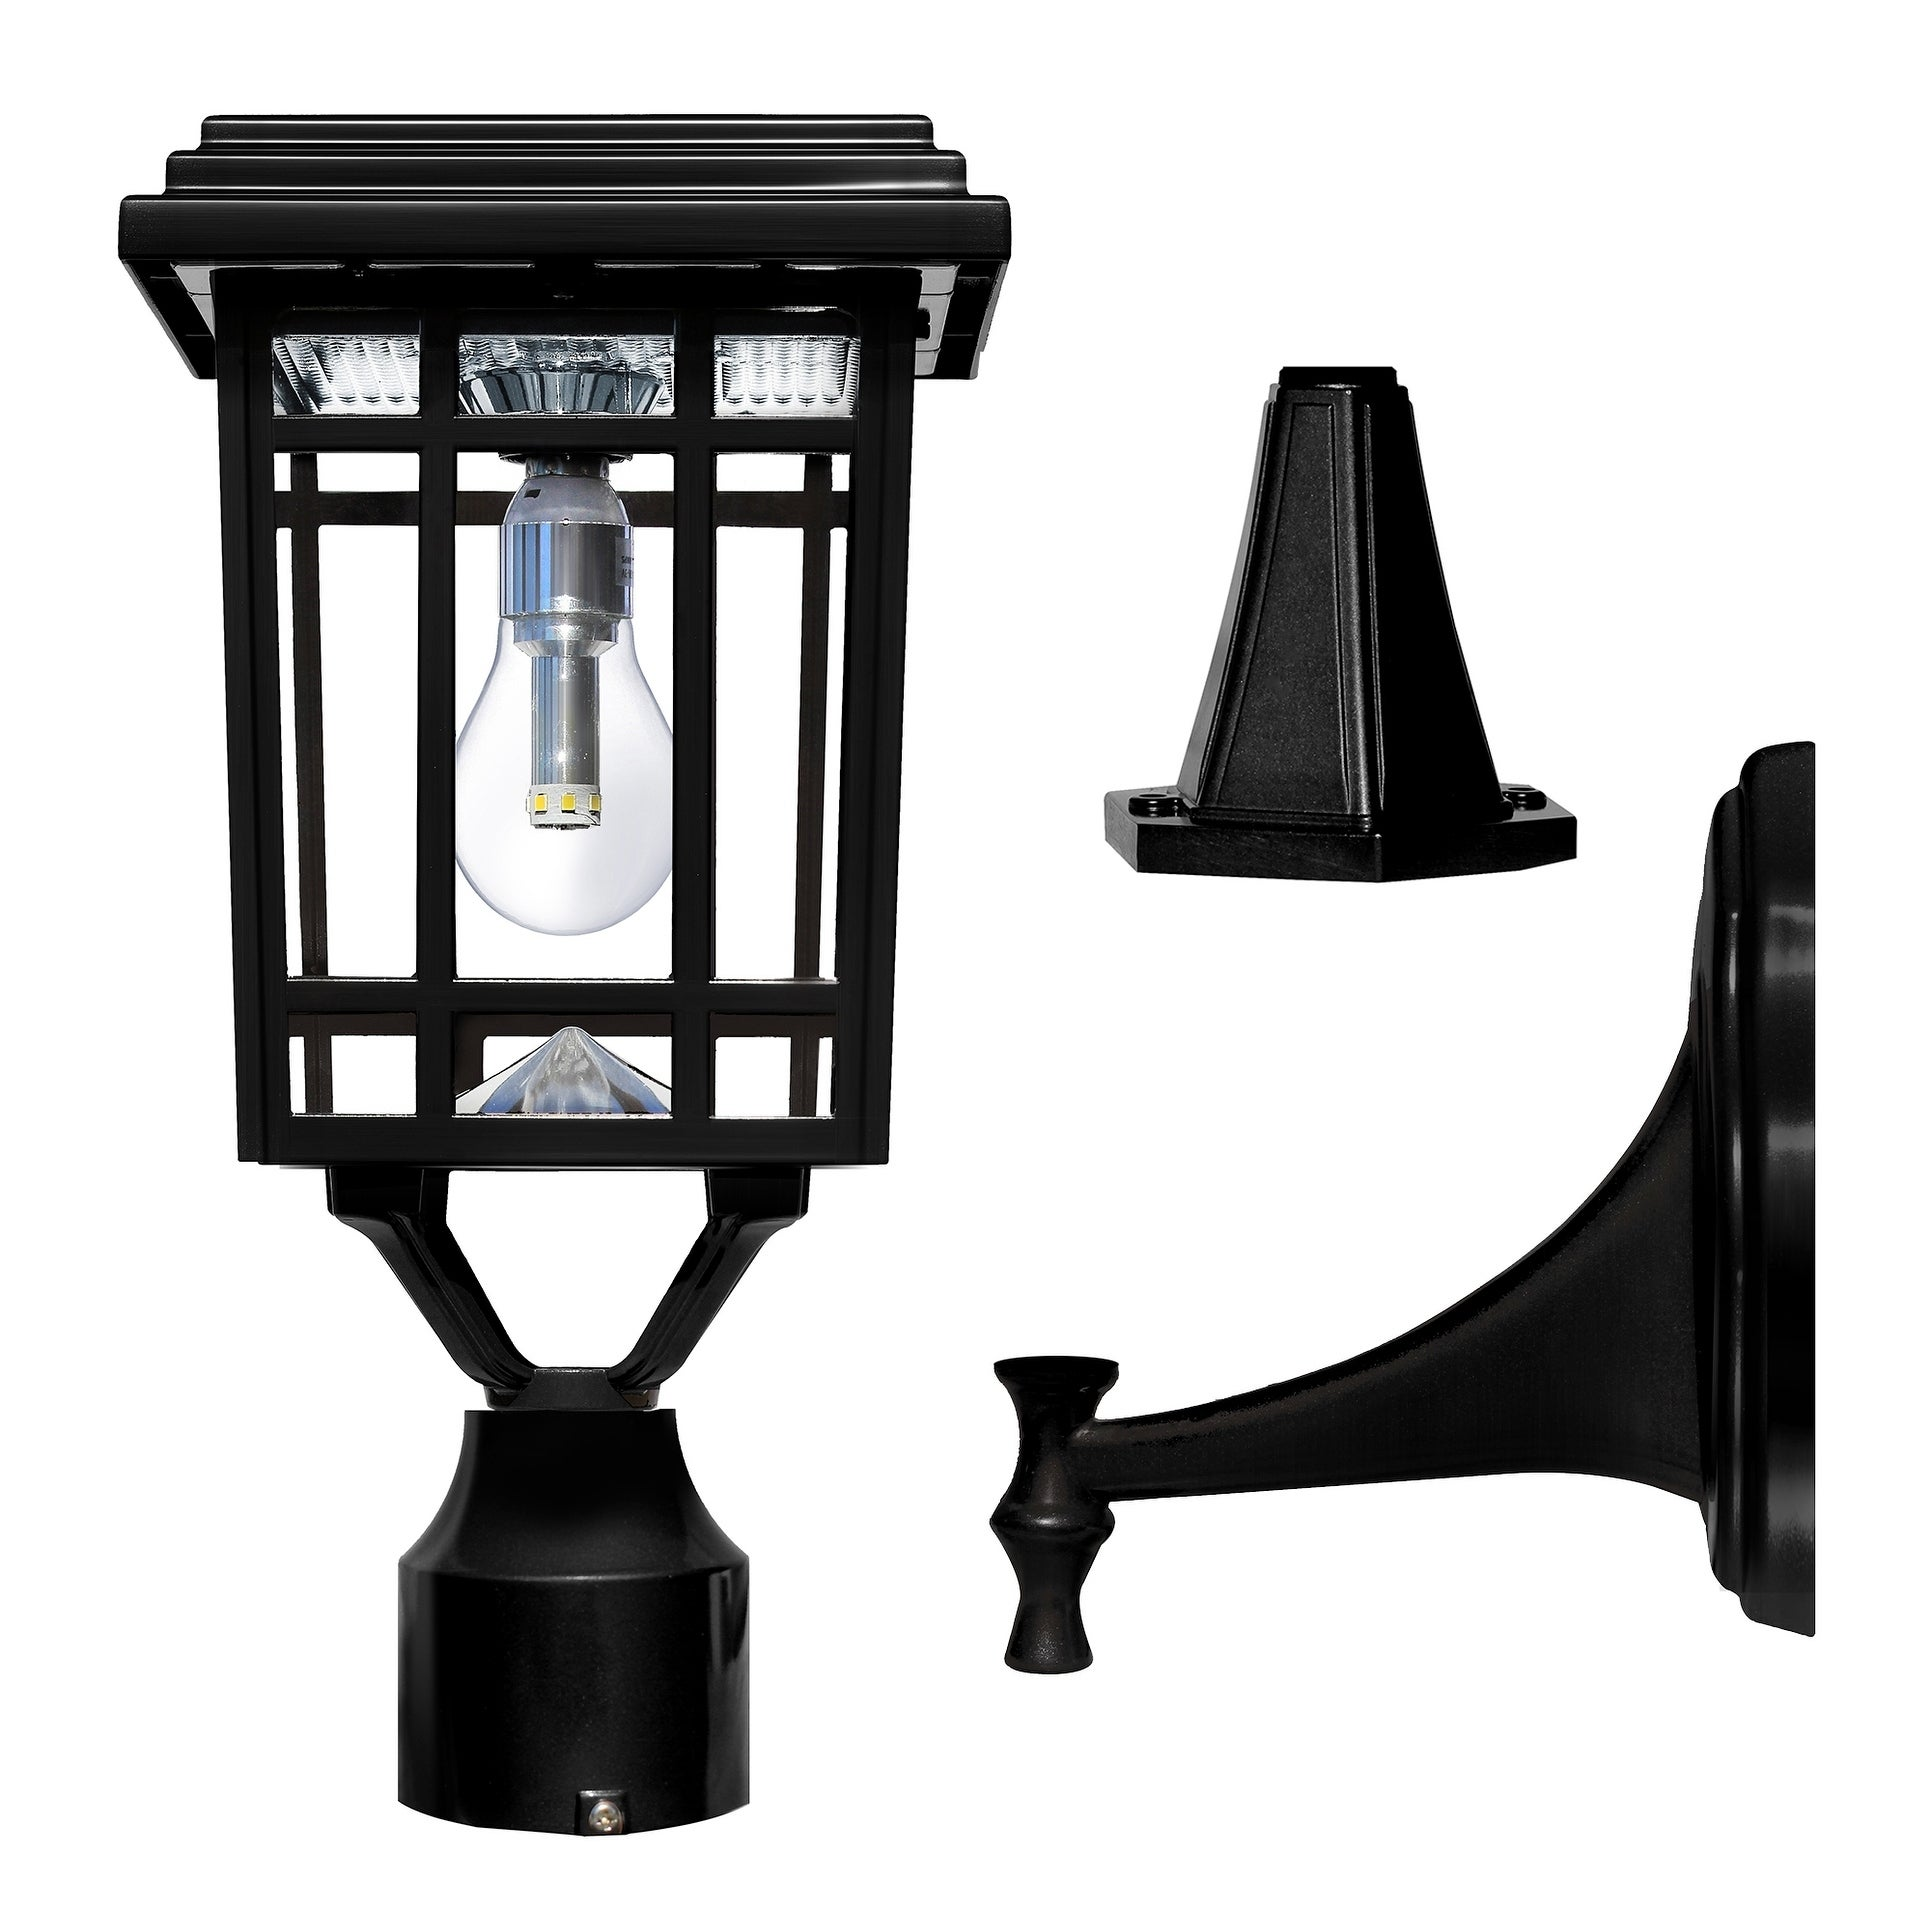 Picture of: Grayton 3 Inch Weathered Bronze Or Black Finish Solar Wall Mount Light By Havenside Home Overstock 27102235